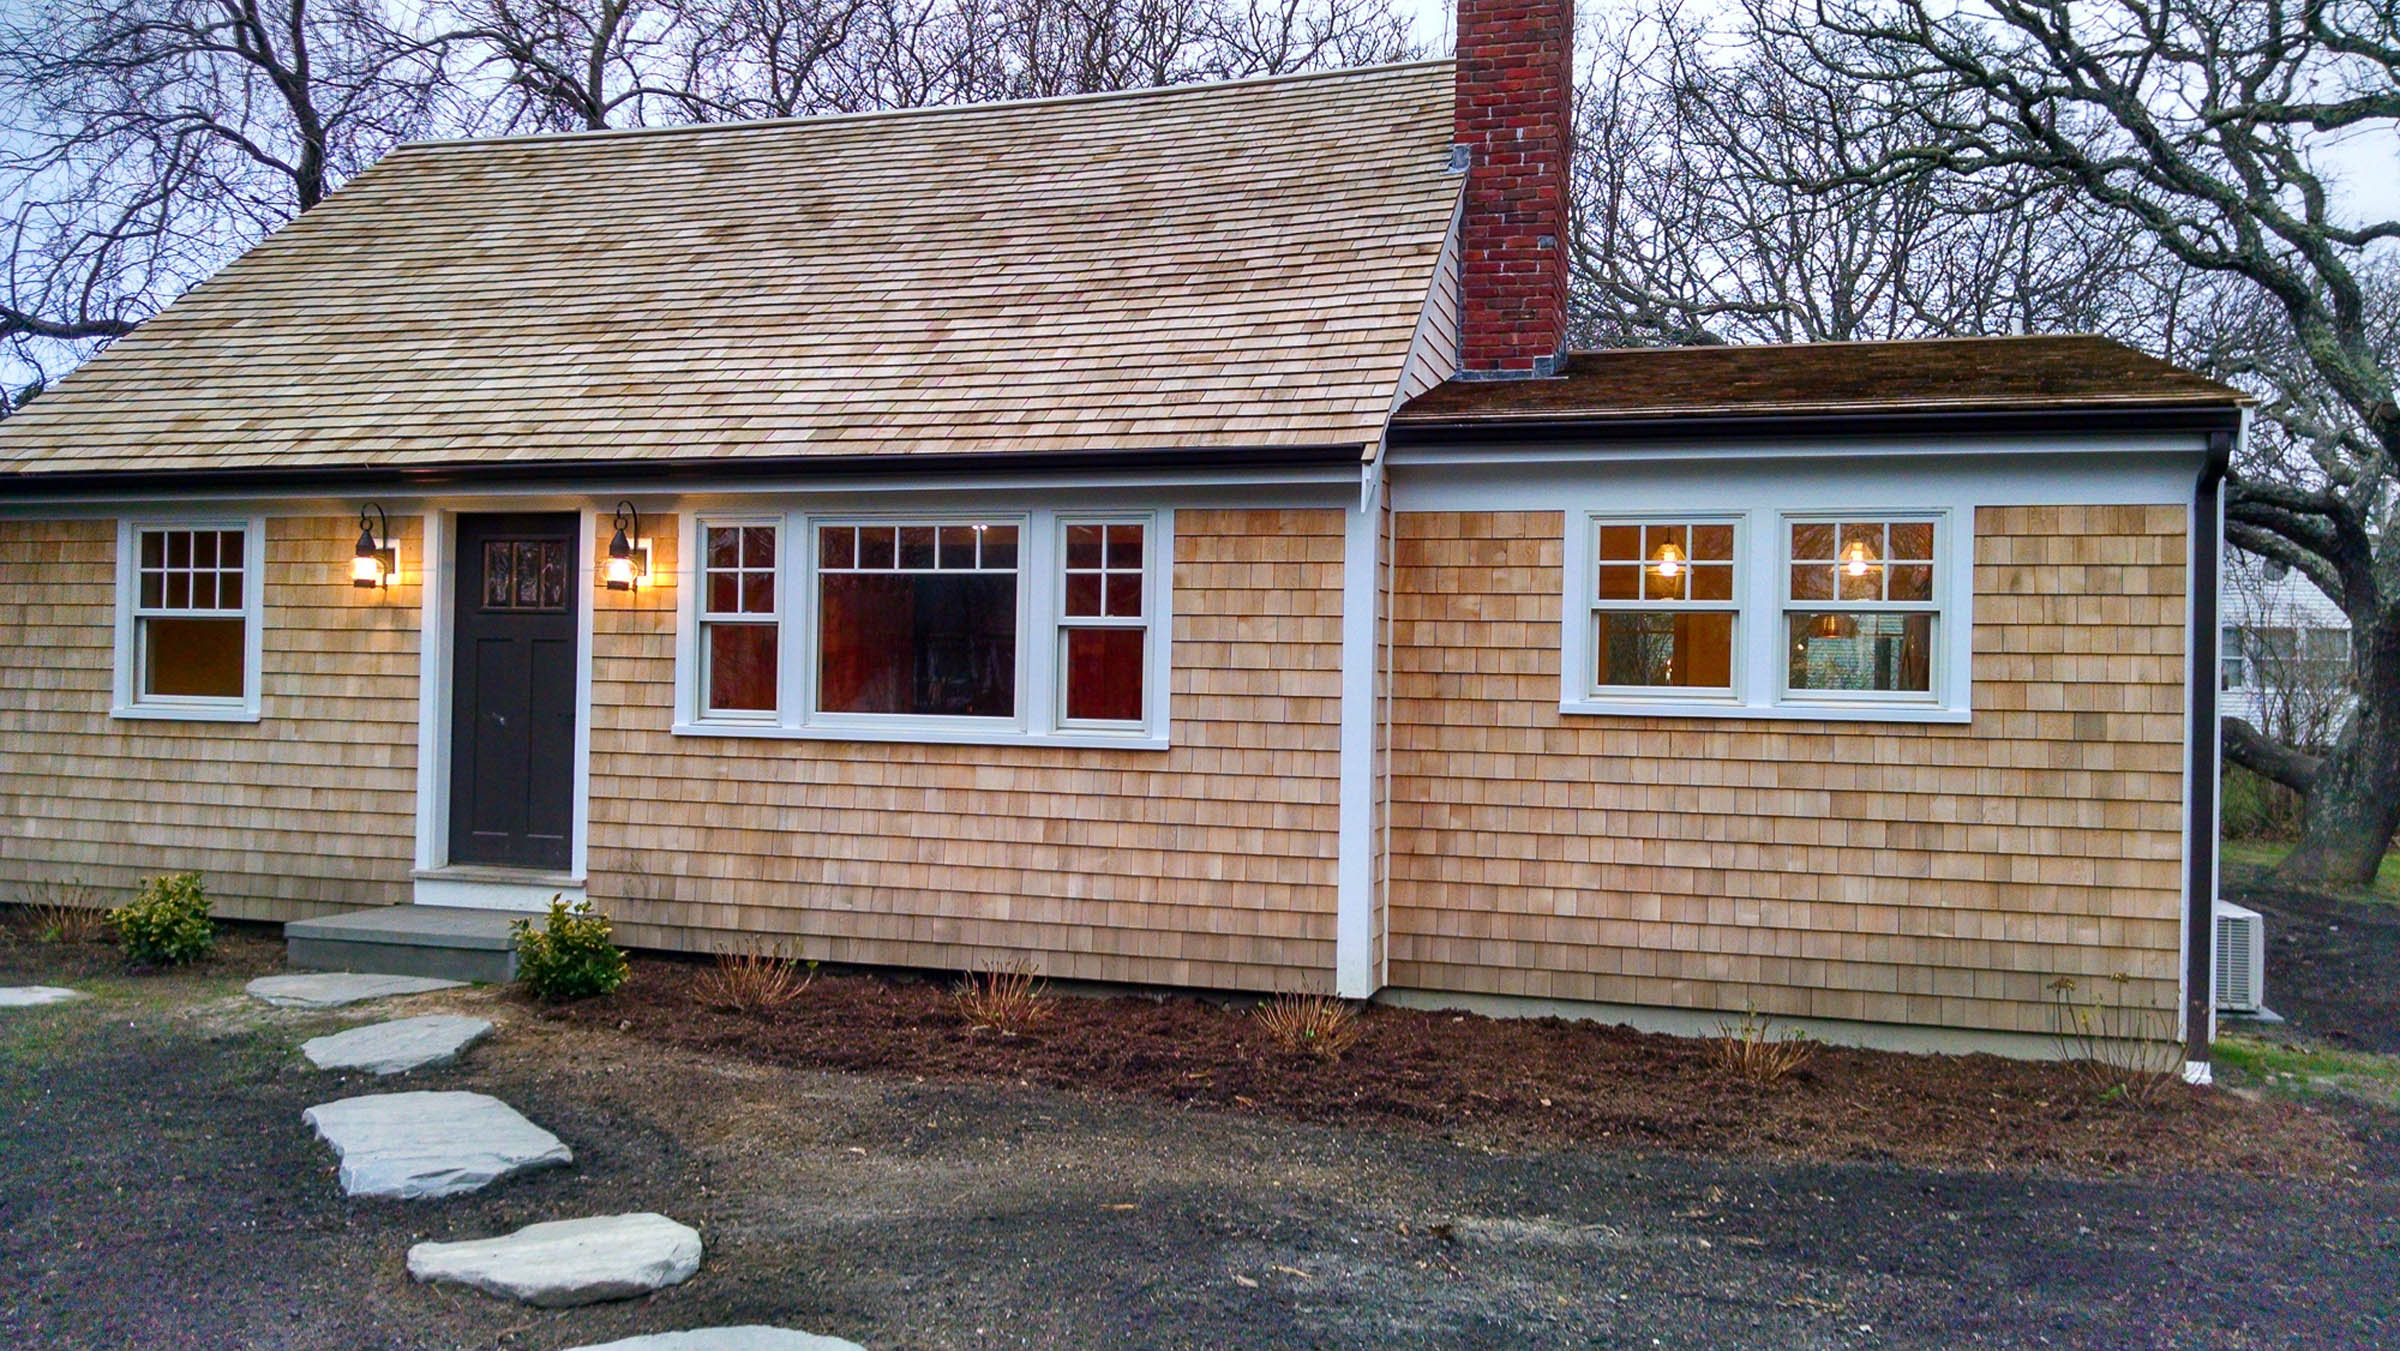 http://s3.amazonaws.com/images.horgandesignbuild.com/projects/IMG_20141213_155046733_HDR.jpg